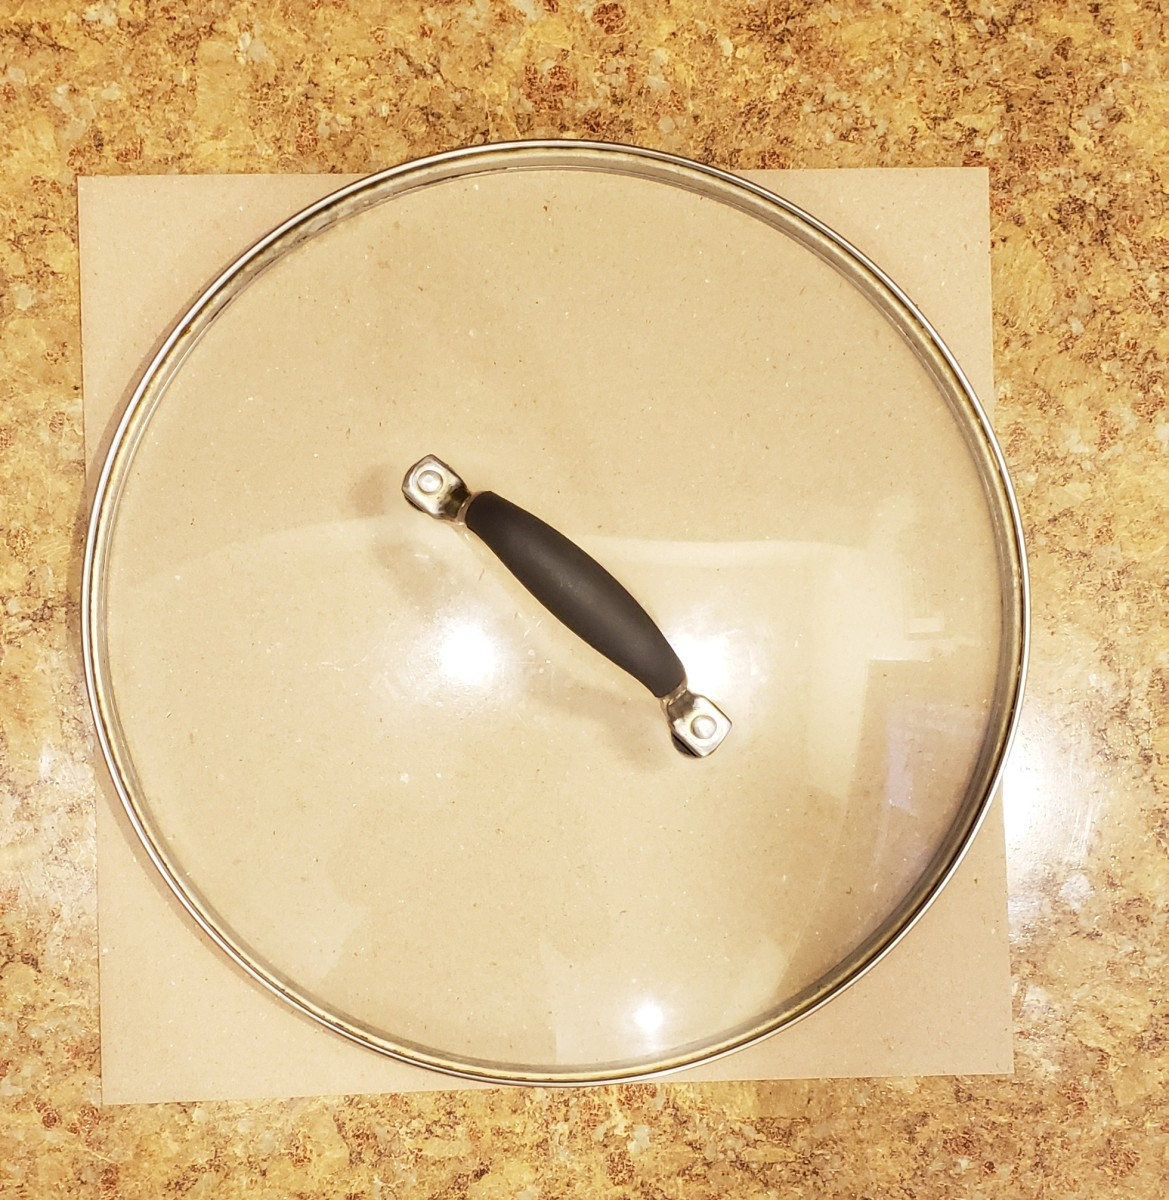 A frying pan lid makes a great guide for drawing a circle